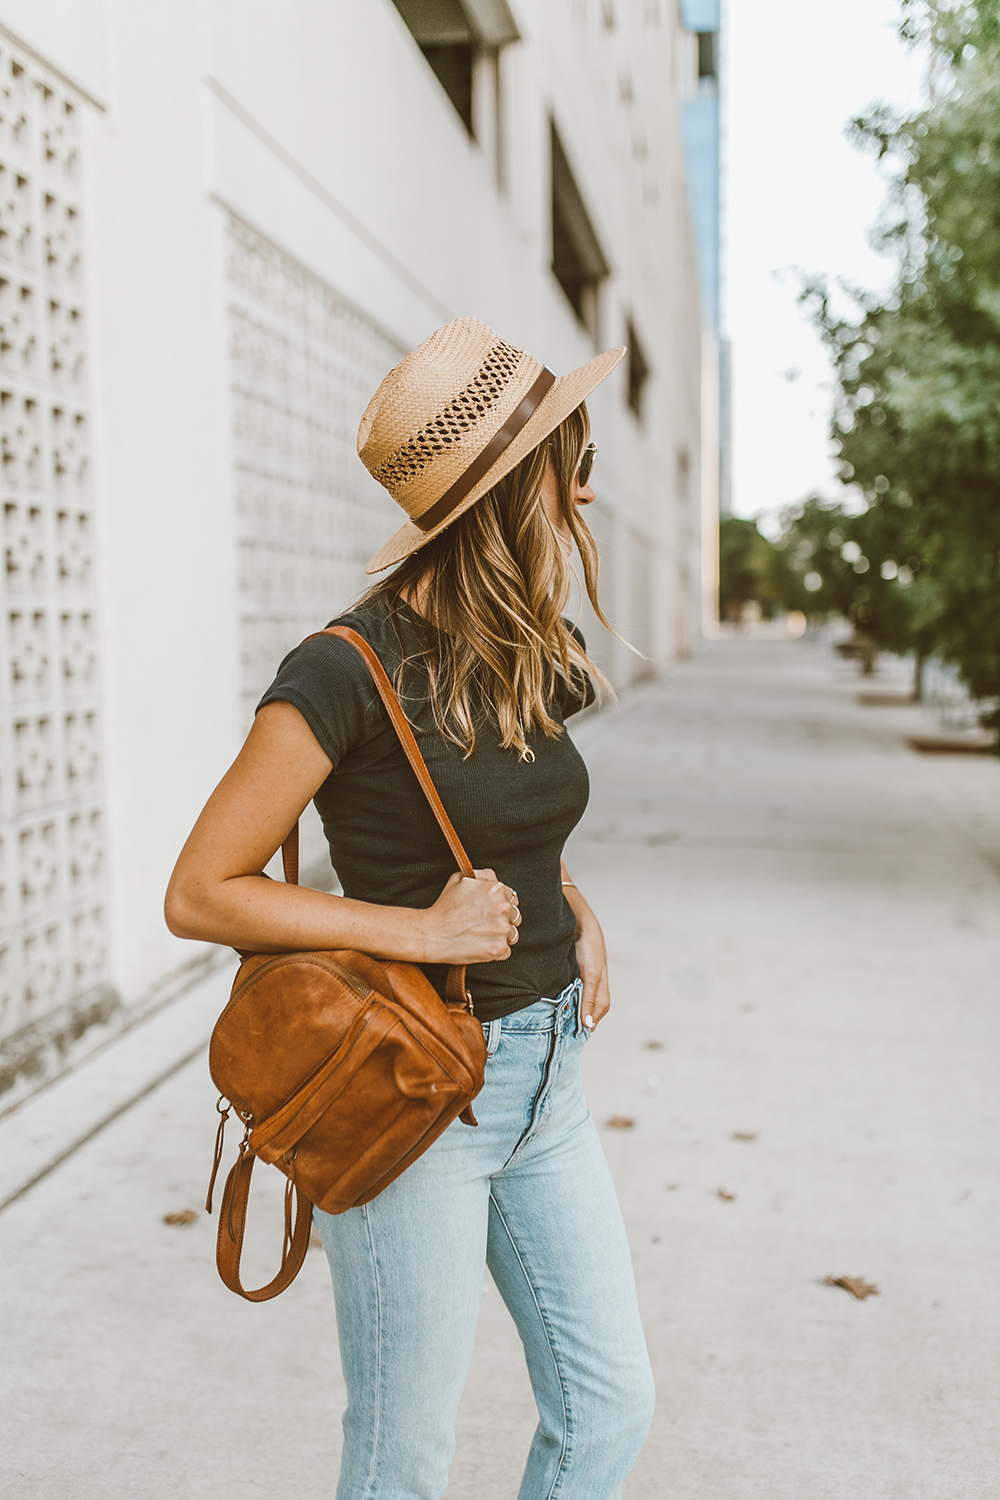 livvyland-blog-olivia-watson-austin-texas-fashion-style-blog-black-tee-jeans-outfit-madewell-mini-backpack-english-saddle-2